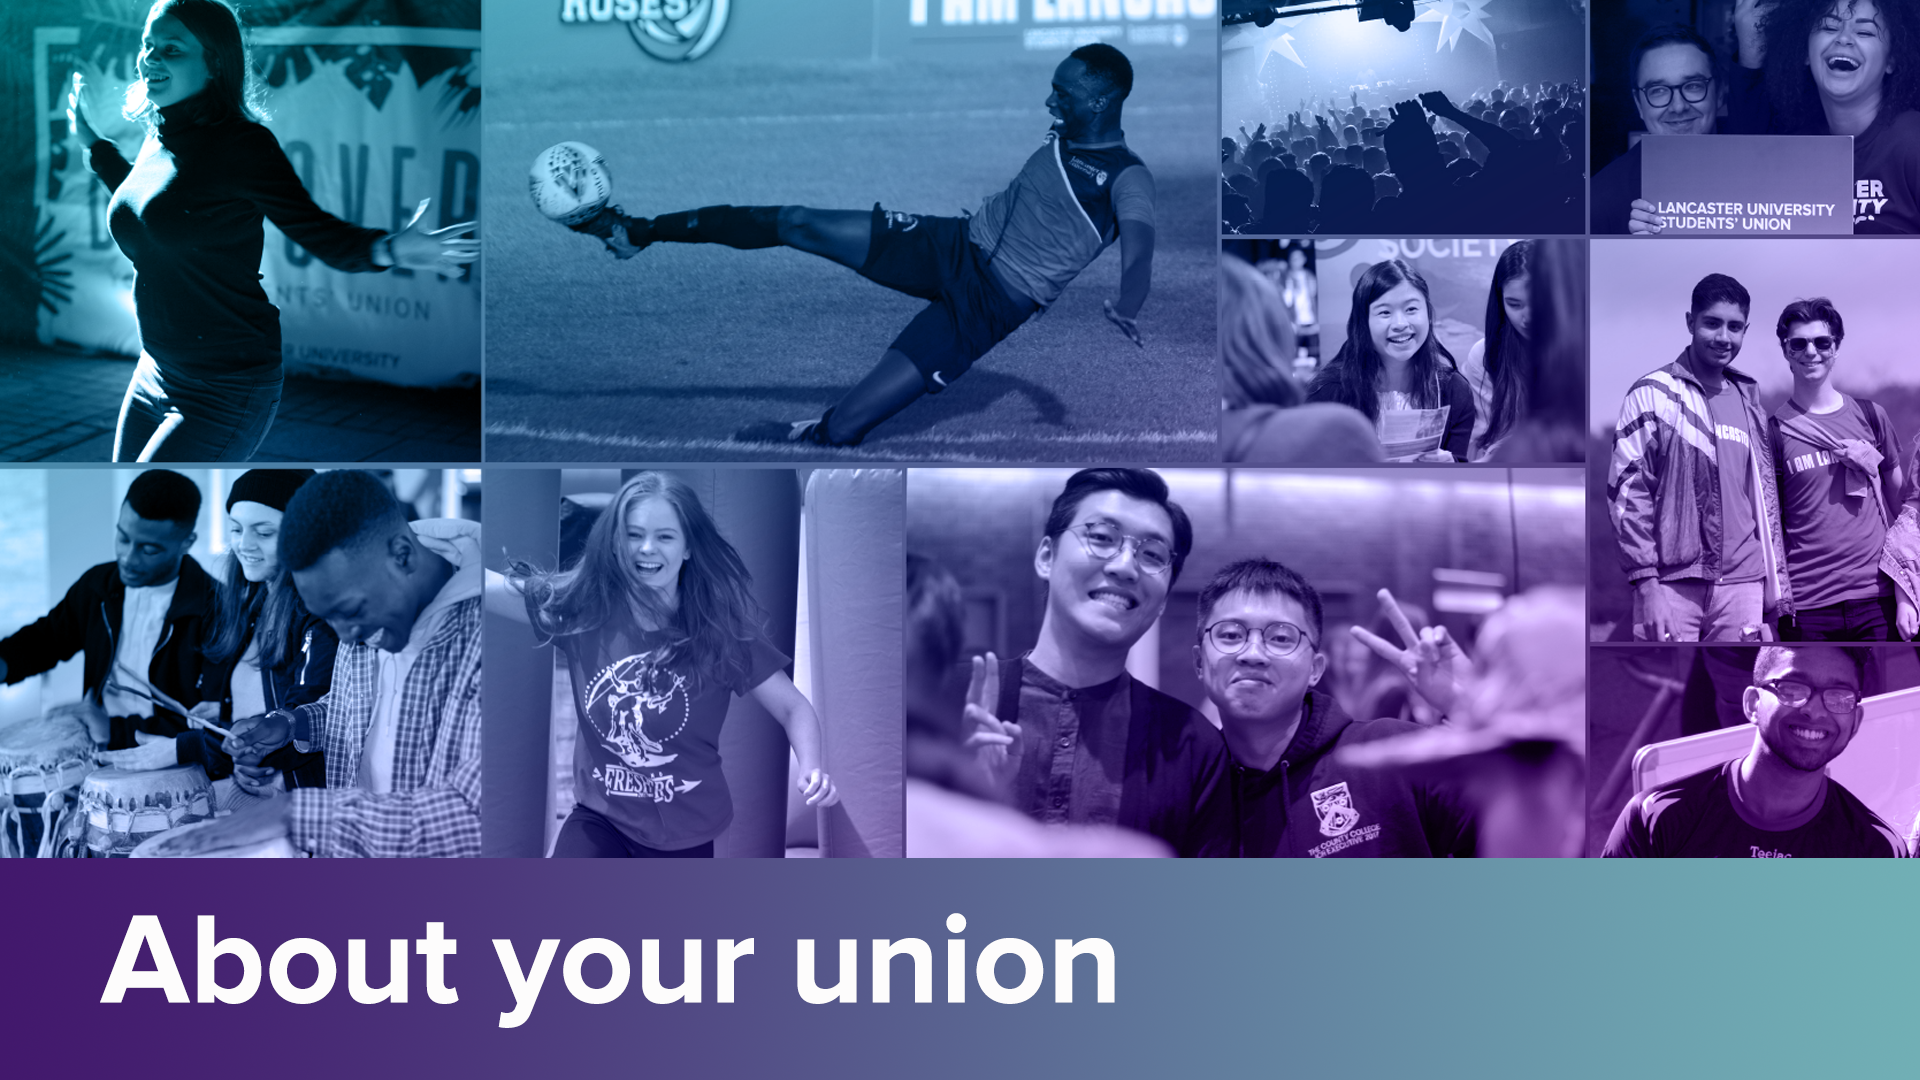 Find out more about your union